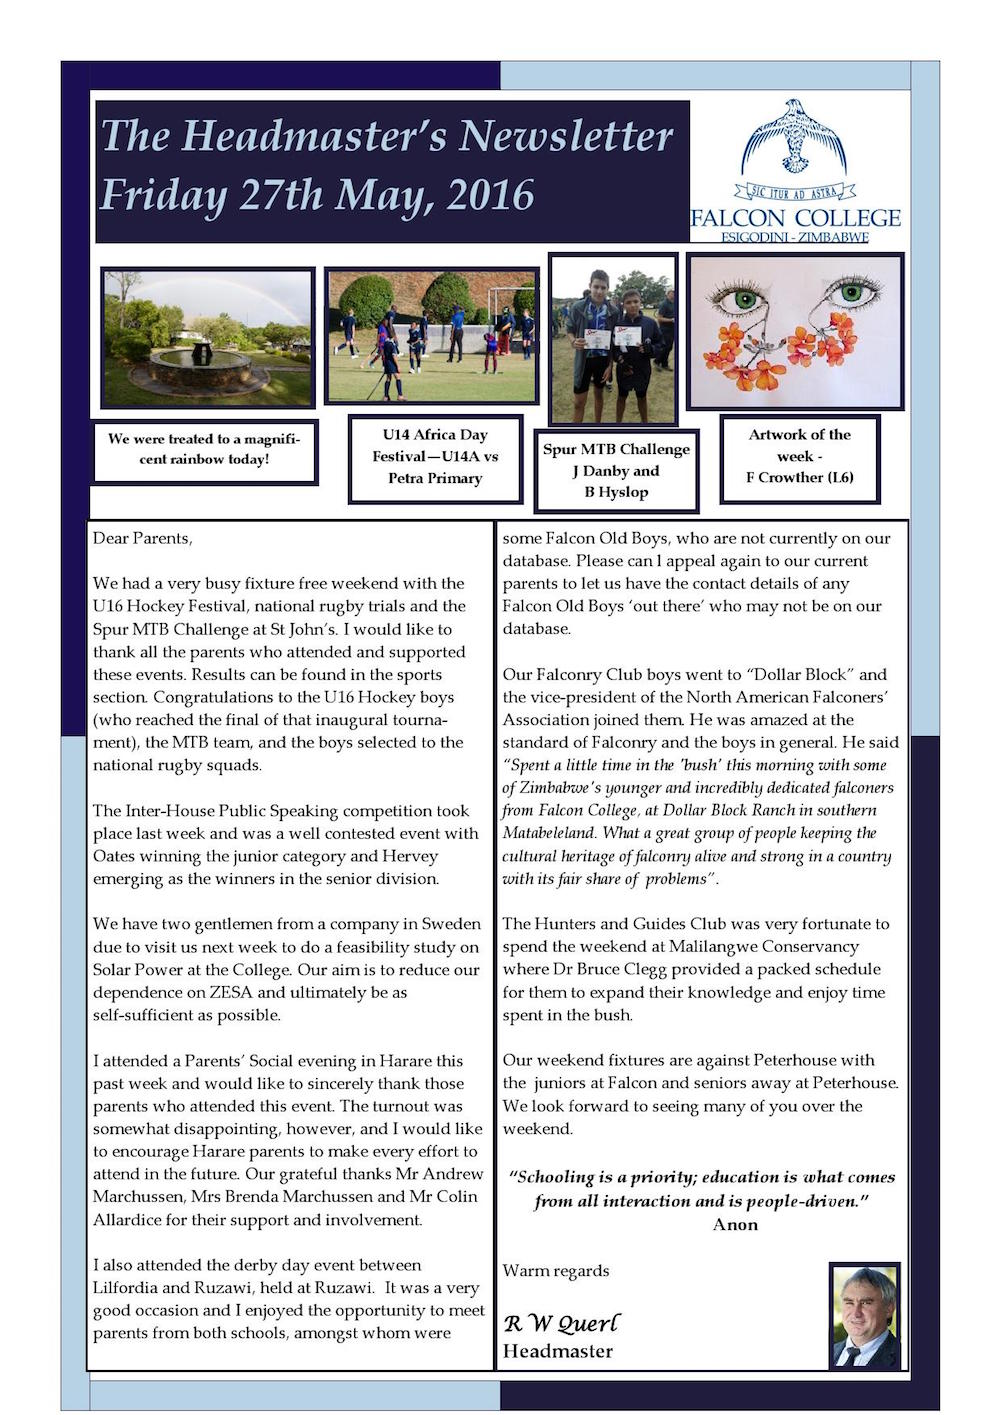 Headmaster's Newsletter Friday 27th May edited_000001